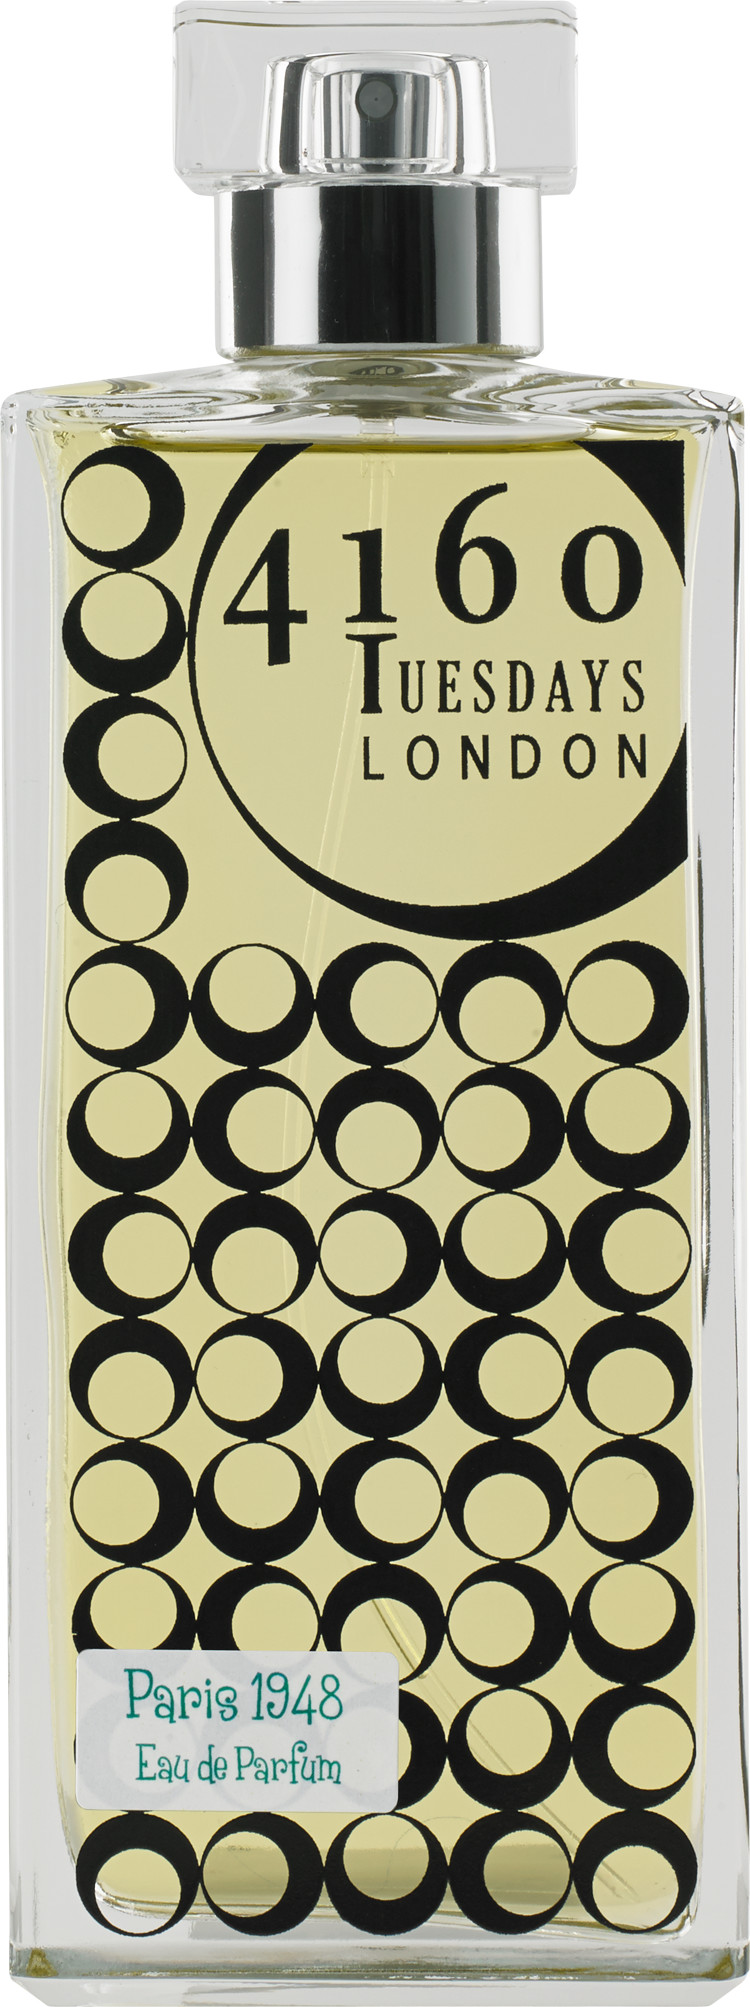 Fragrance 4160 Tuesdays Paris 1948 Eau de Parfum